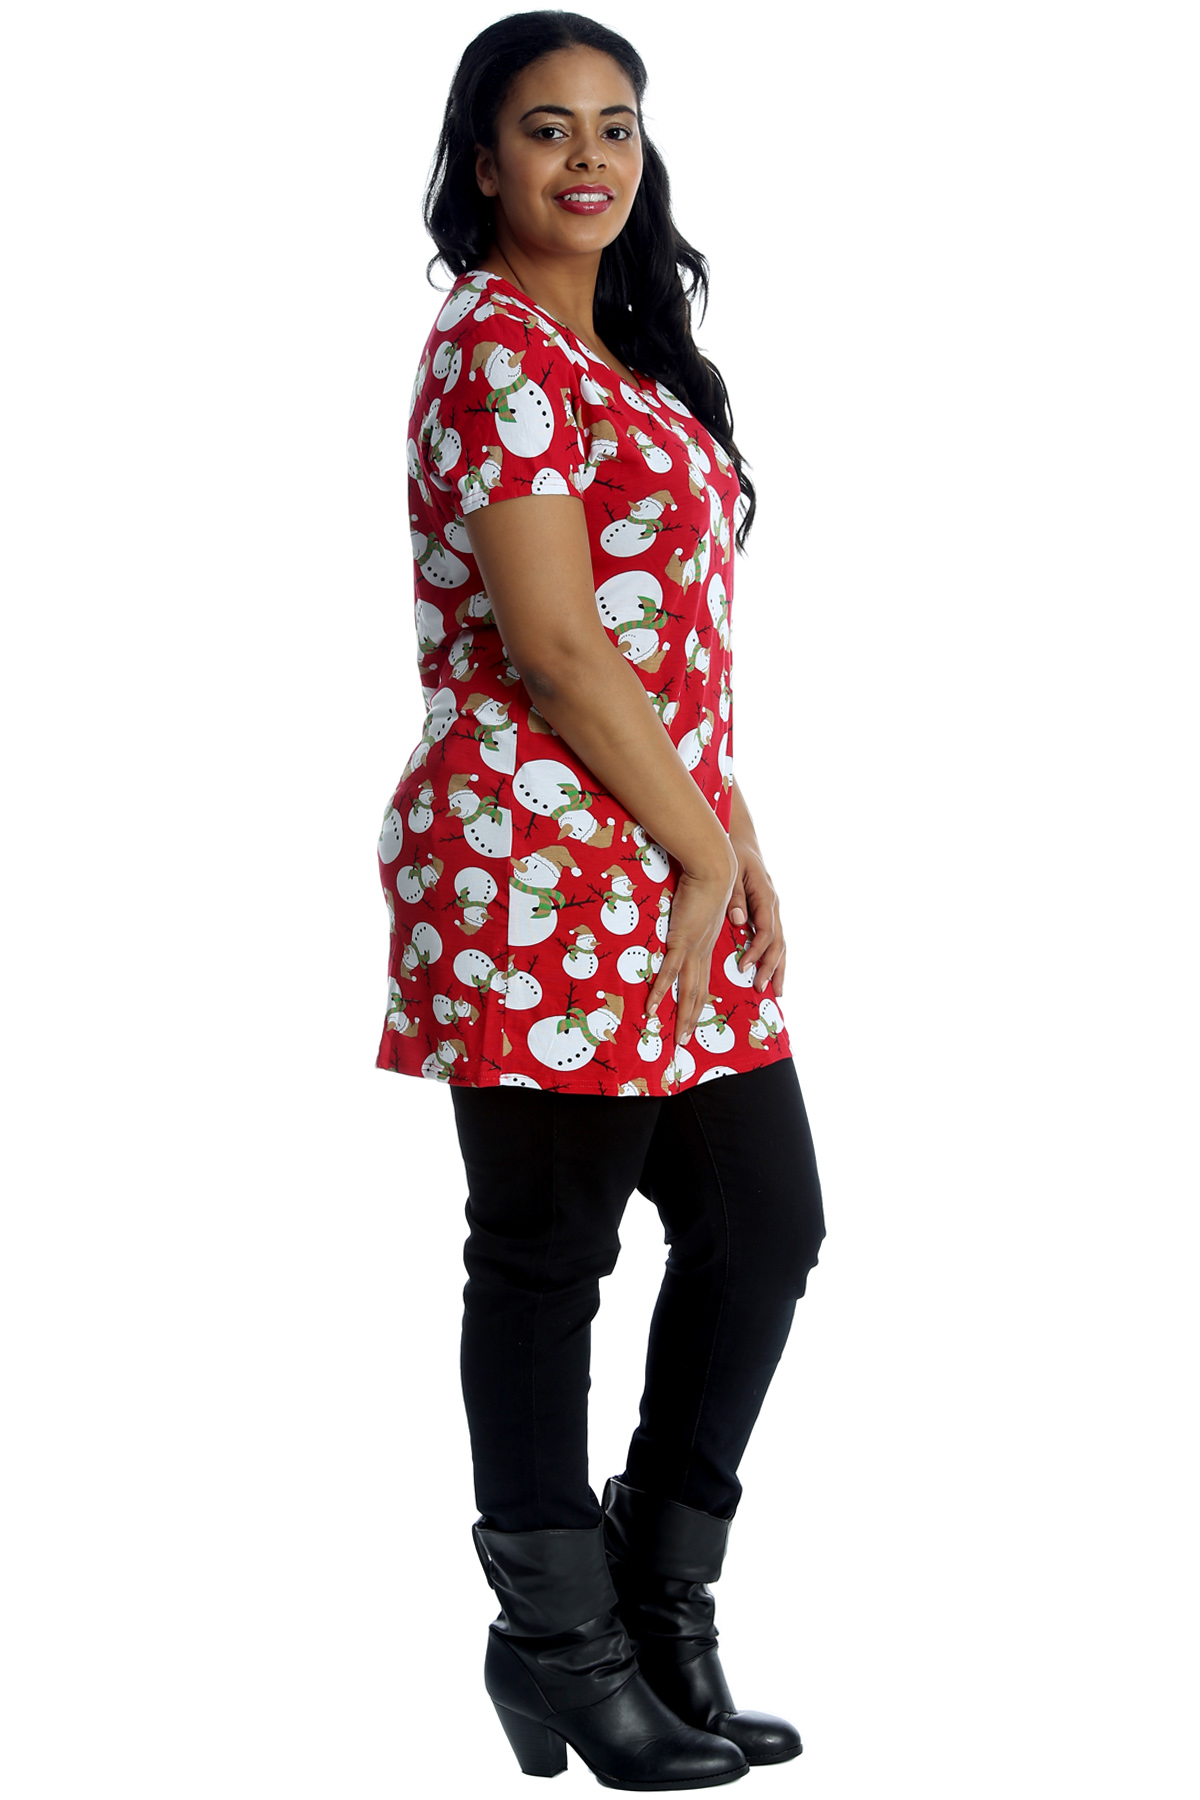 New Womens Plus Size T-Shirt Ladies Snowman Christmas Print Top Novelty Party